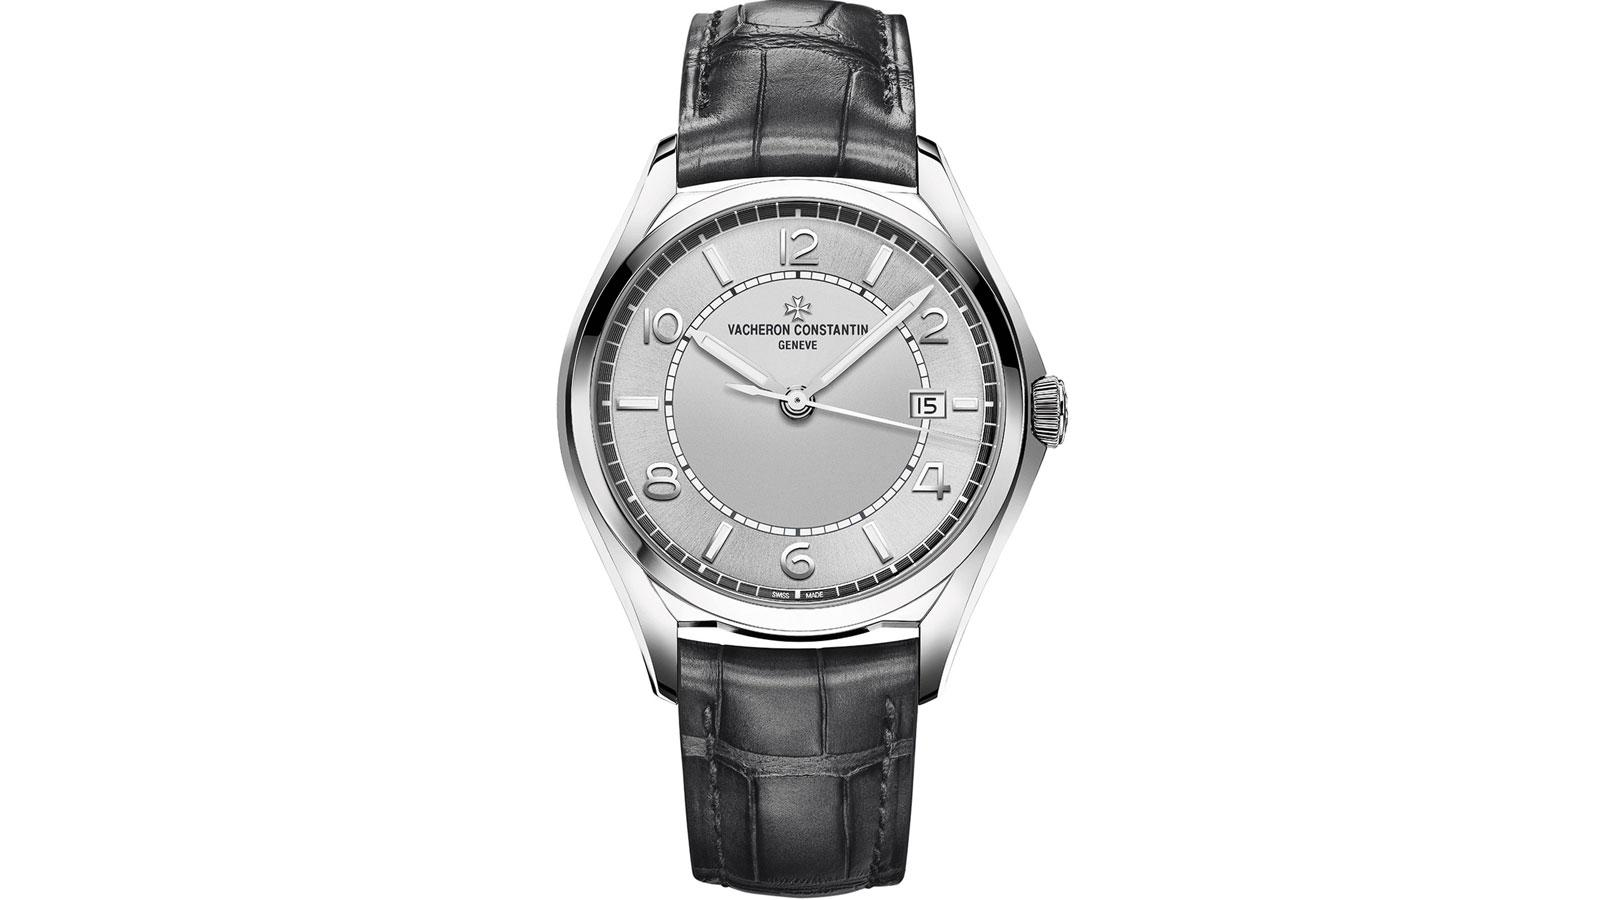 Vacheron Constantin FiftySix collection